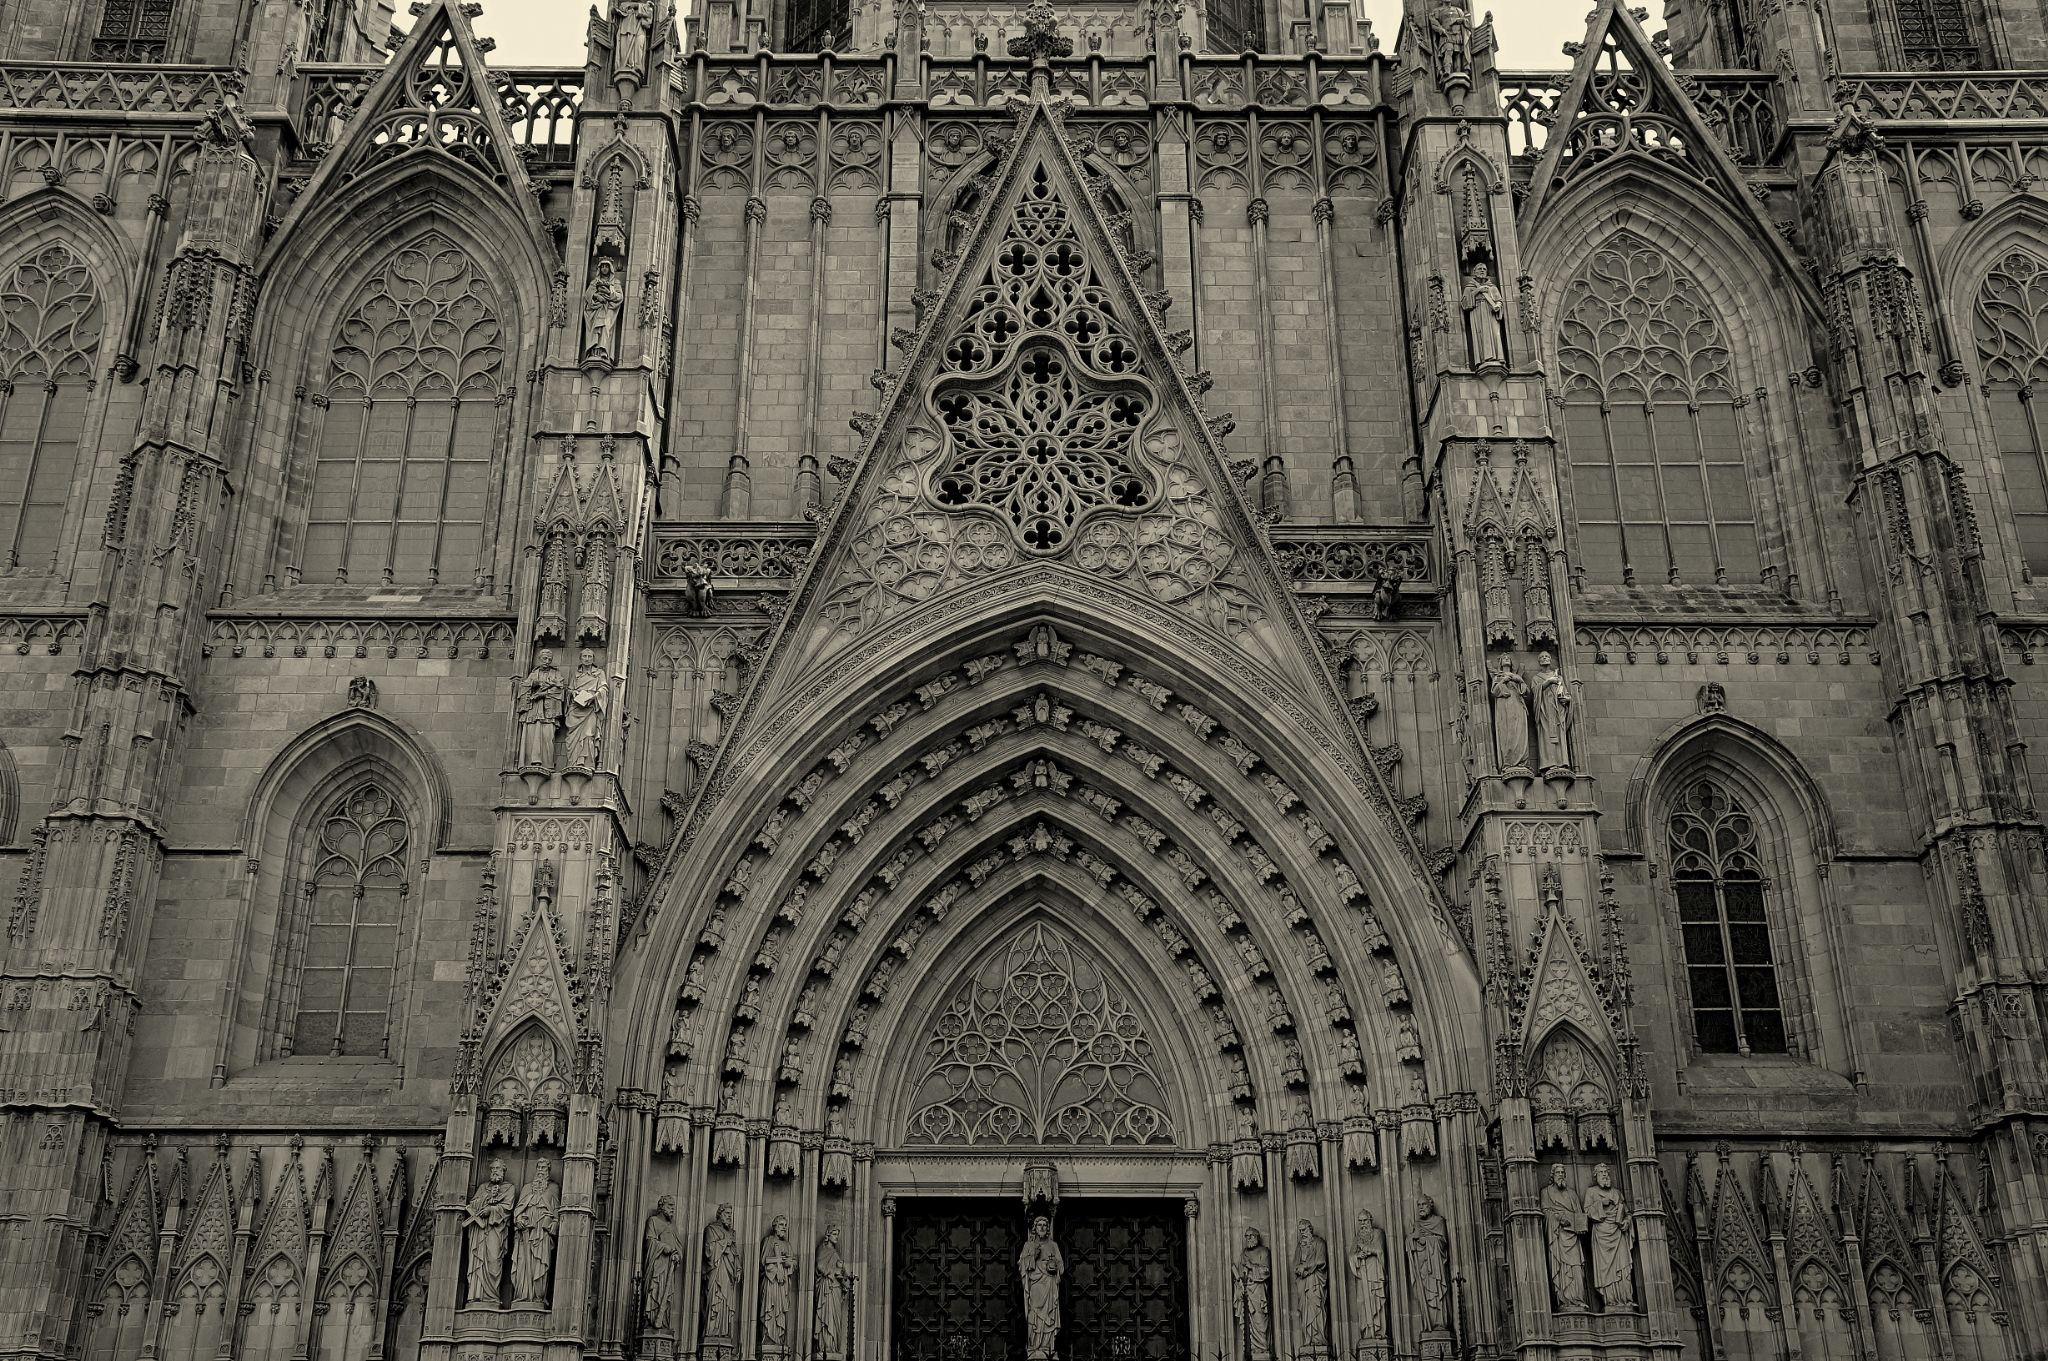 La Catedral by travelwoborders